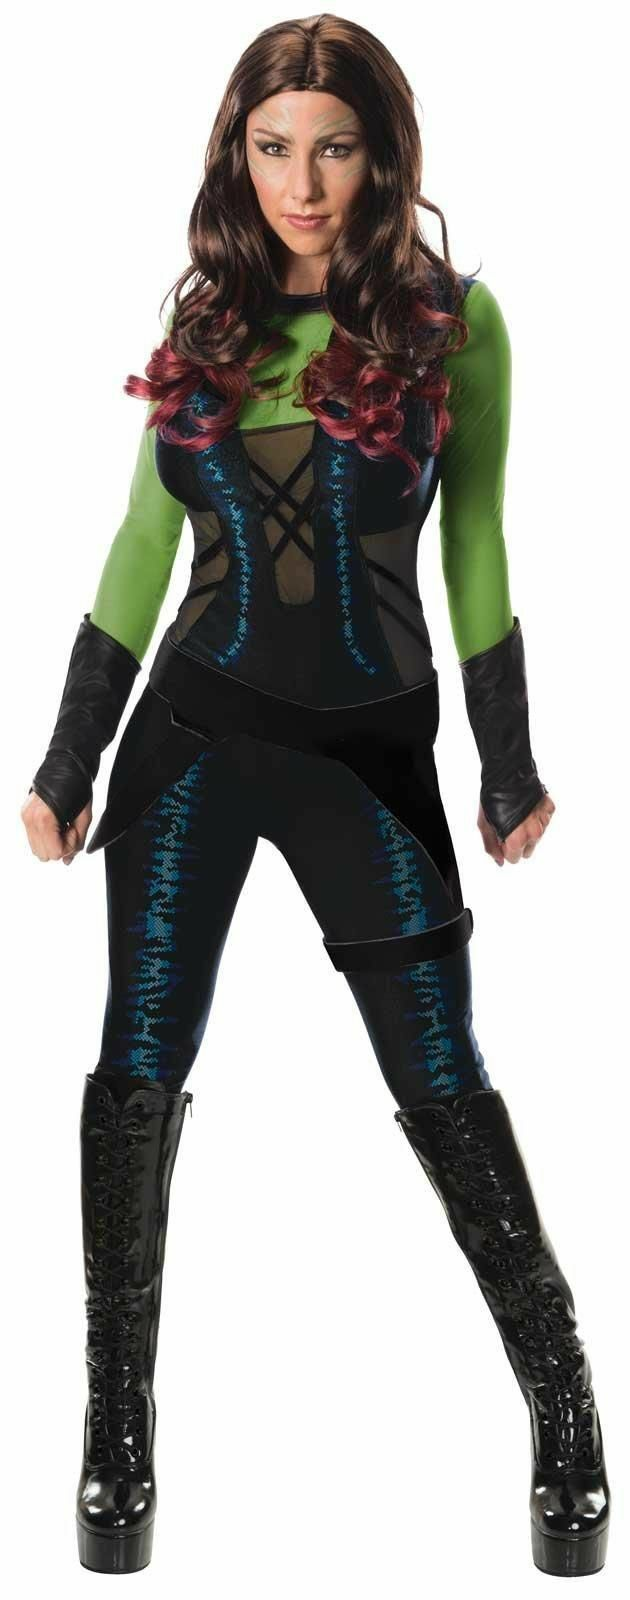 Guardians of the Galaxy - Gamora Female Costume Marvel Comics